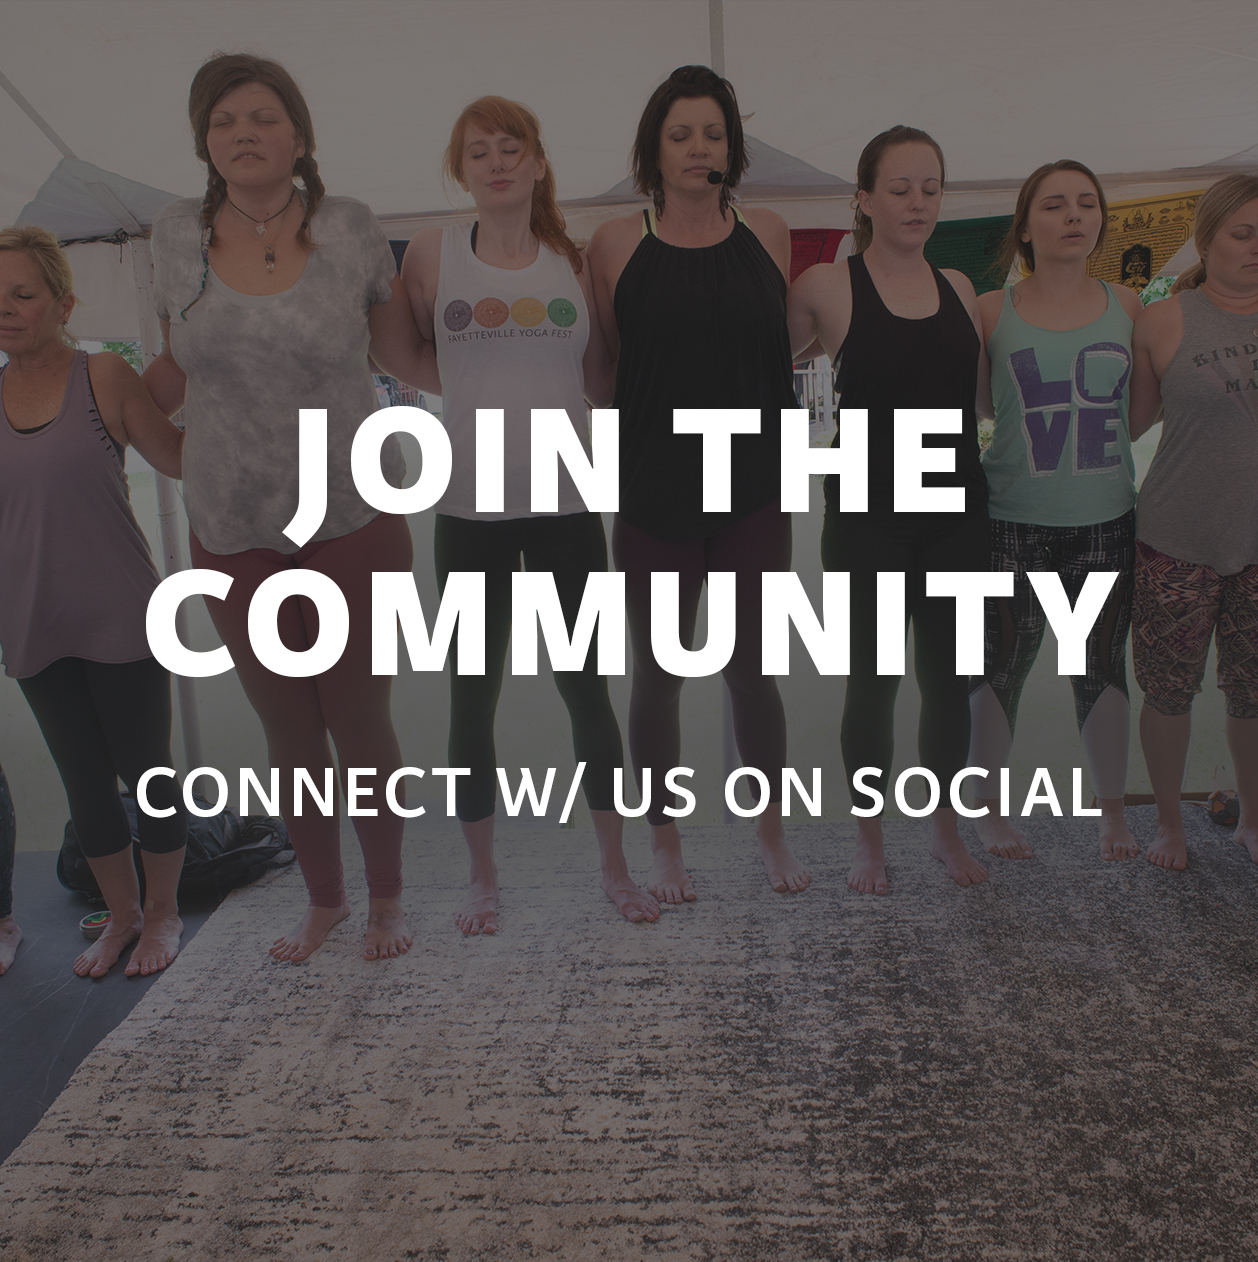 Join the community. Follow Fayetteville Yoga Fest on Instagram.